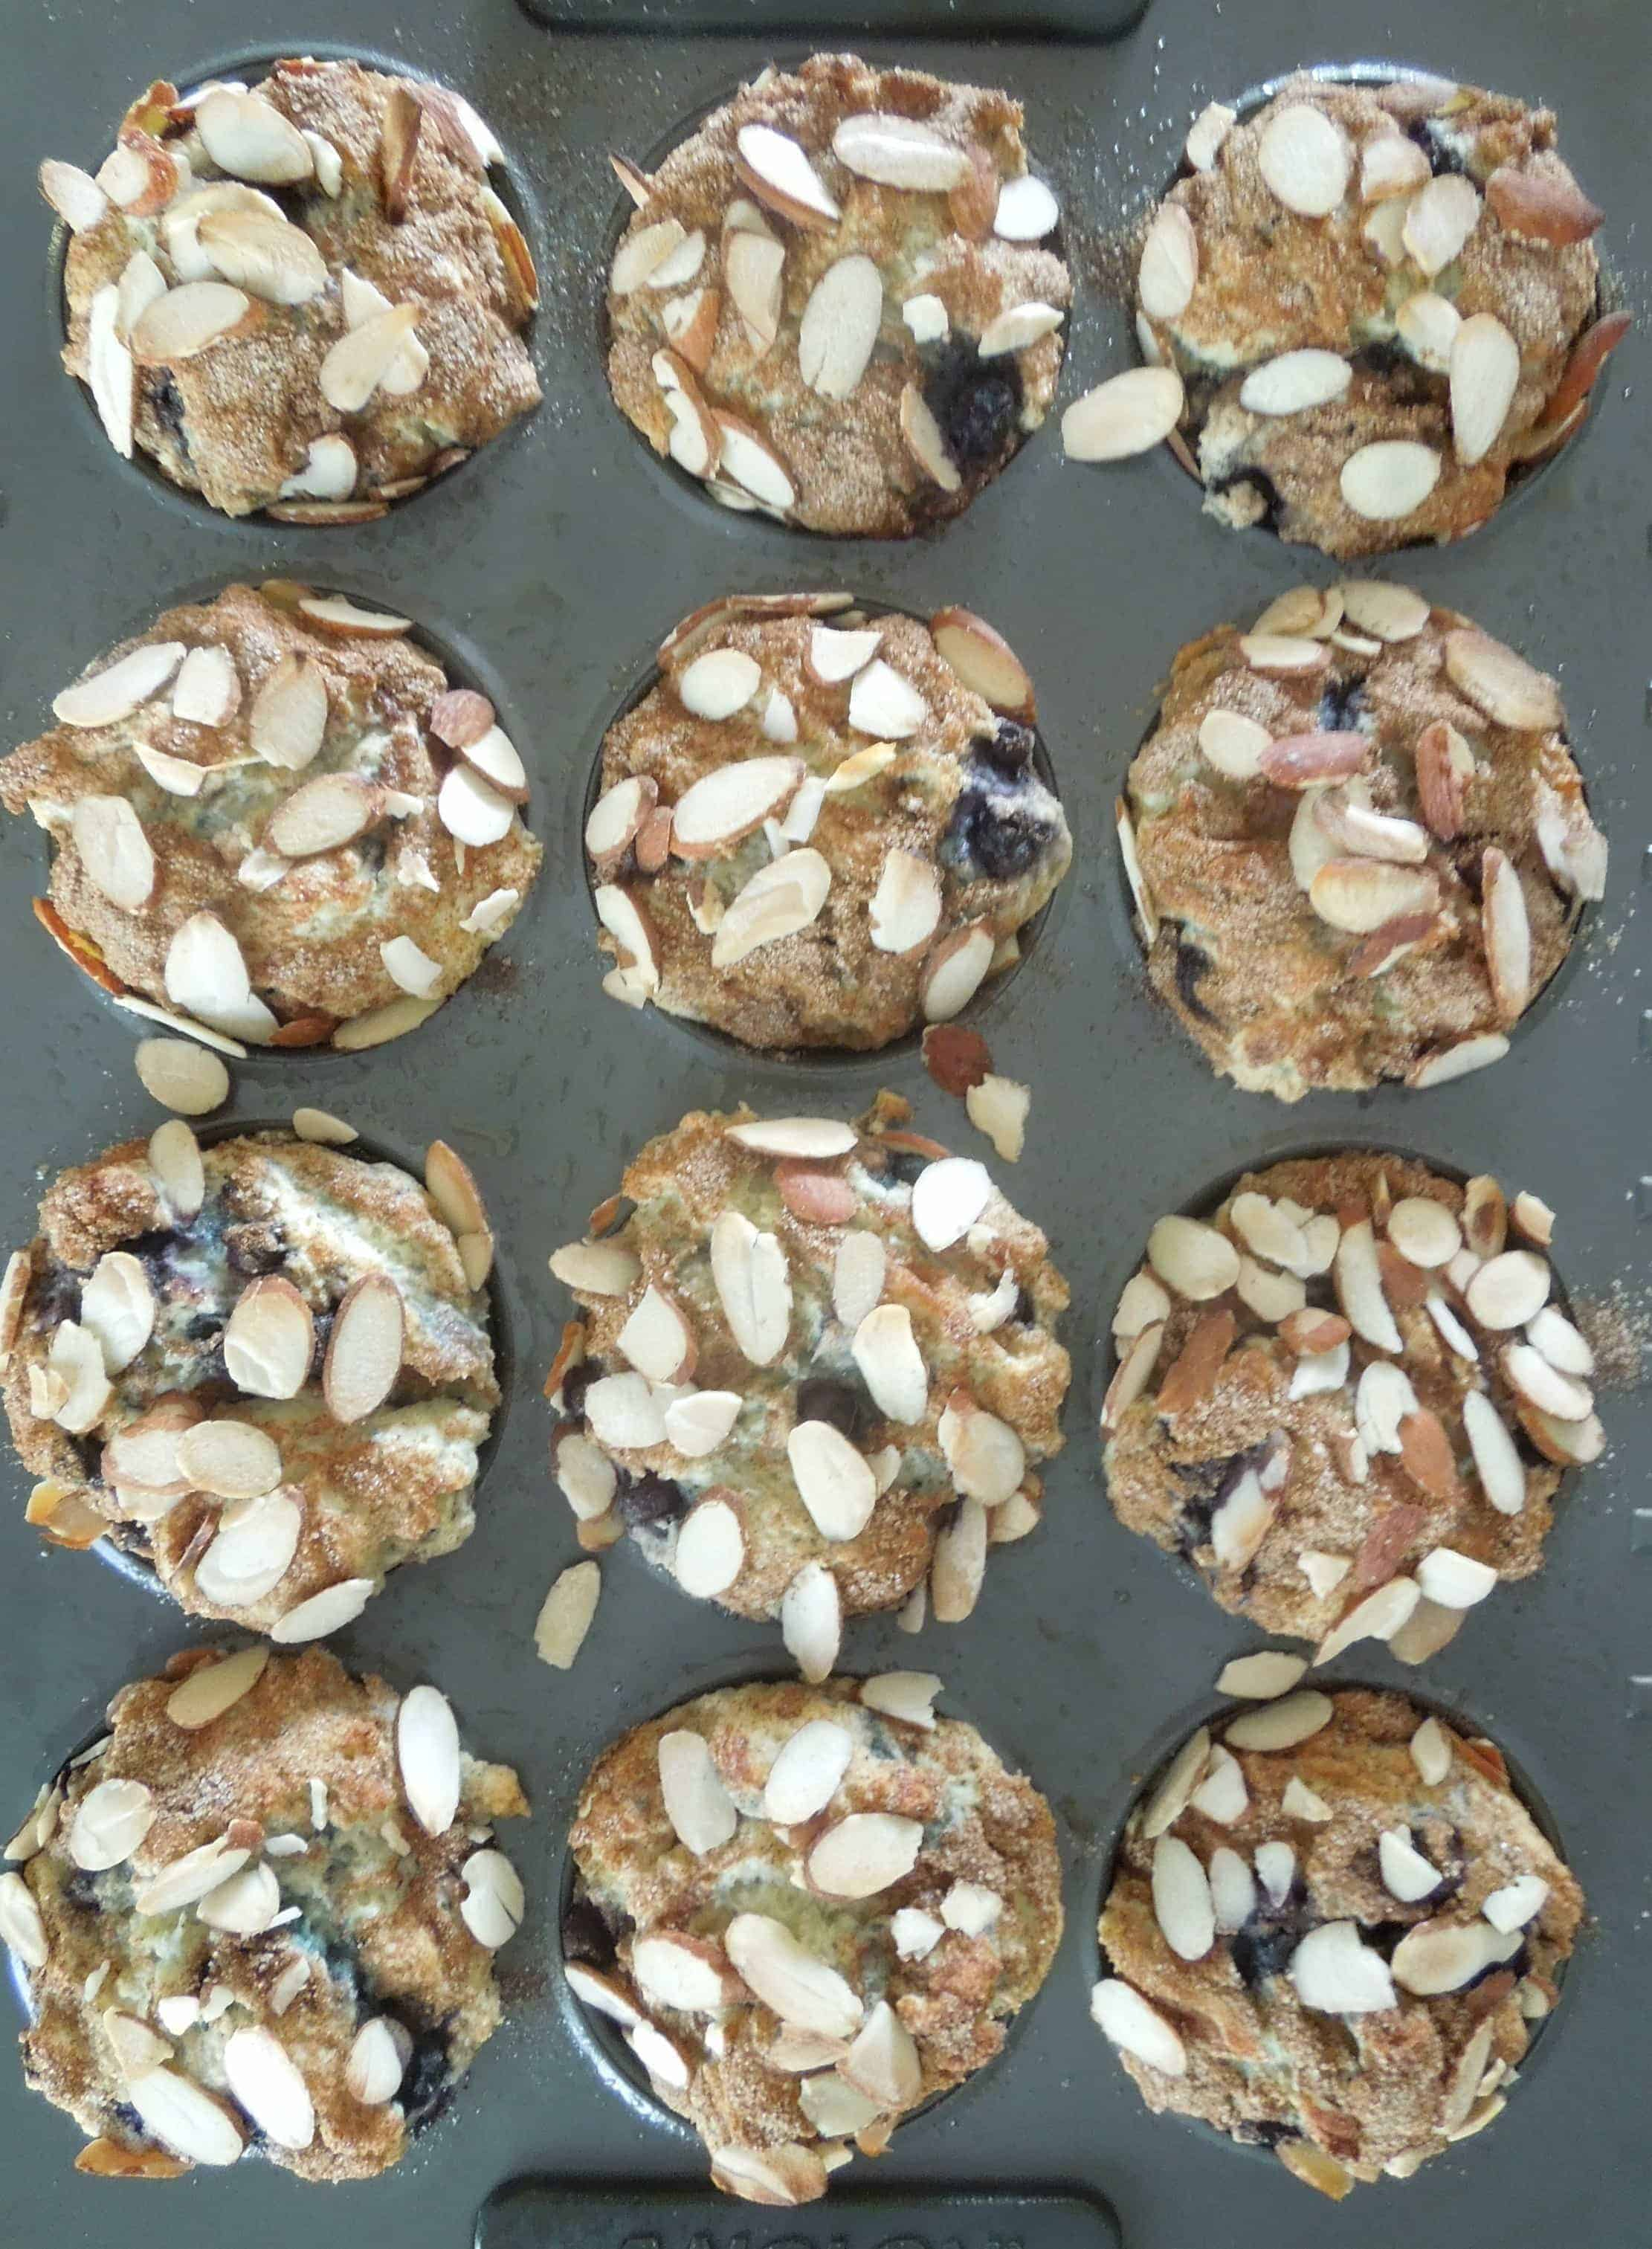 Gluten-Free Blueberry Almond Muffins from What The Fork Food Blog